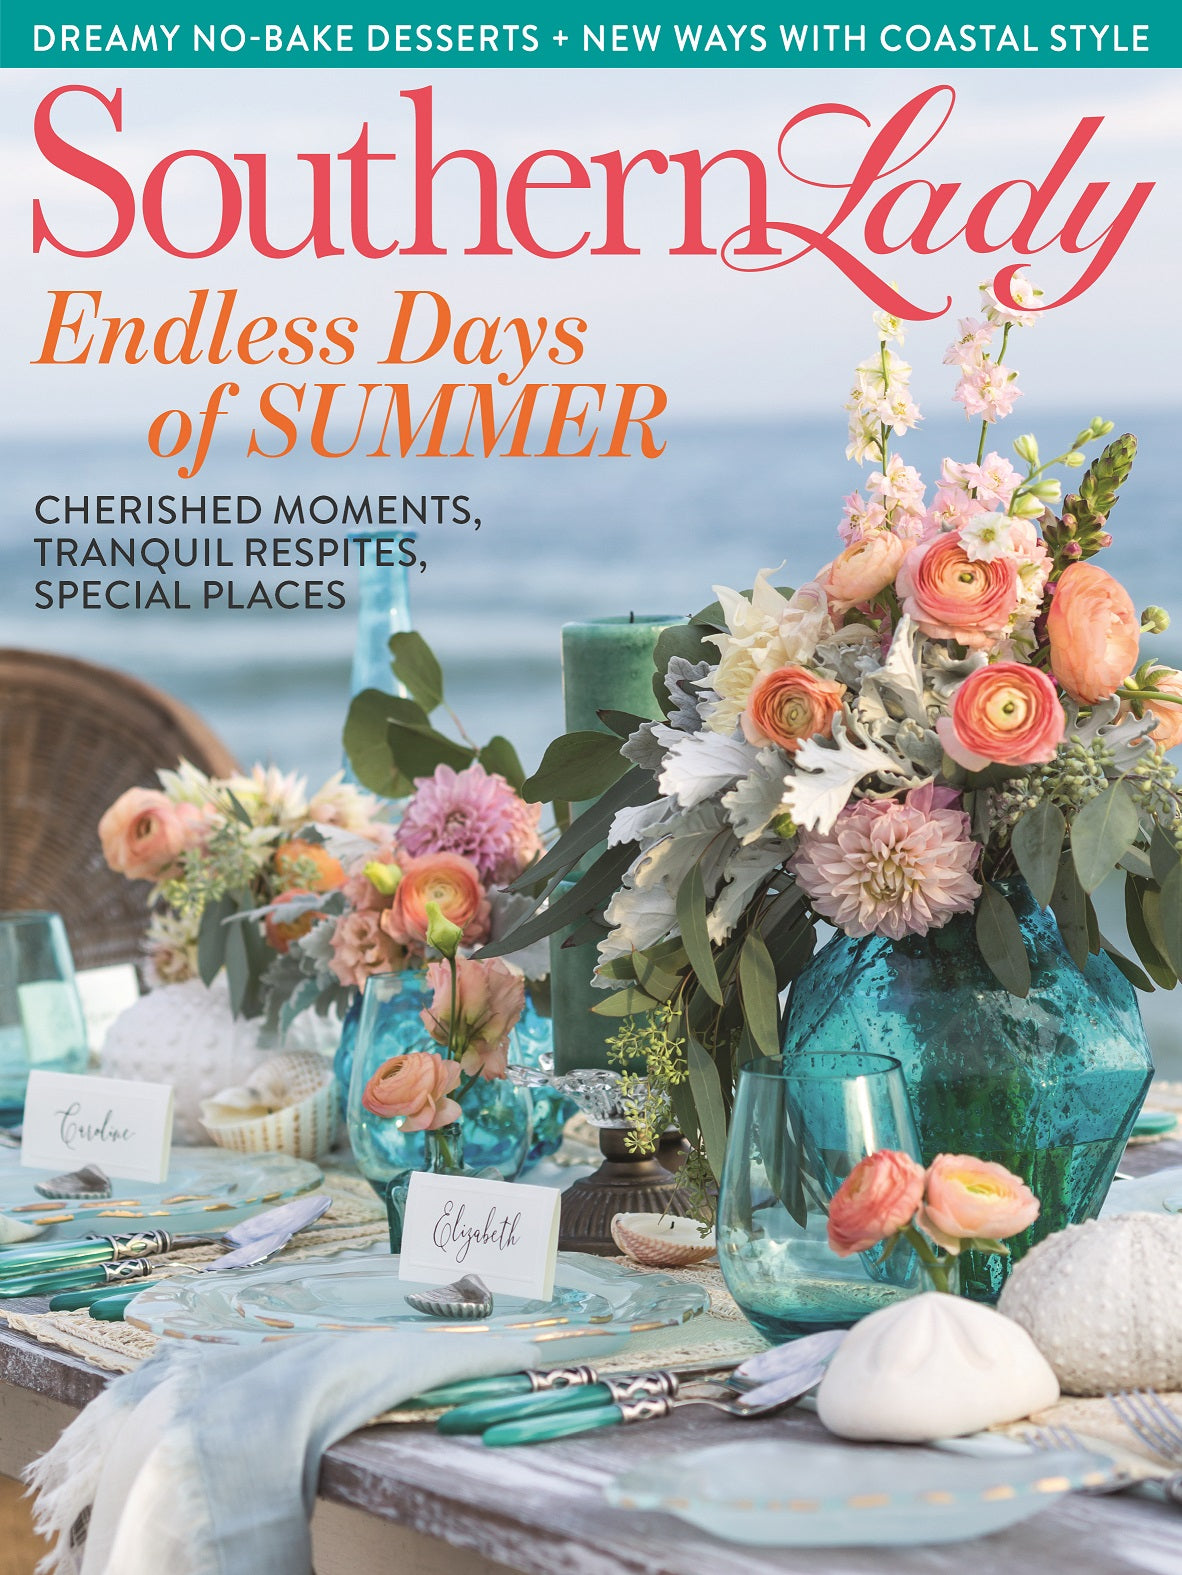 1818 Farms Featured in July Southern Lady Magazine